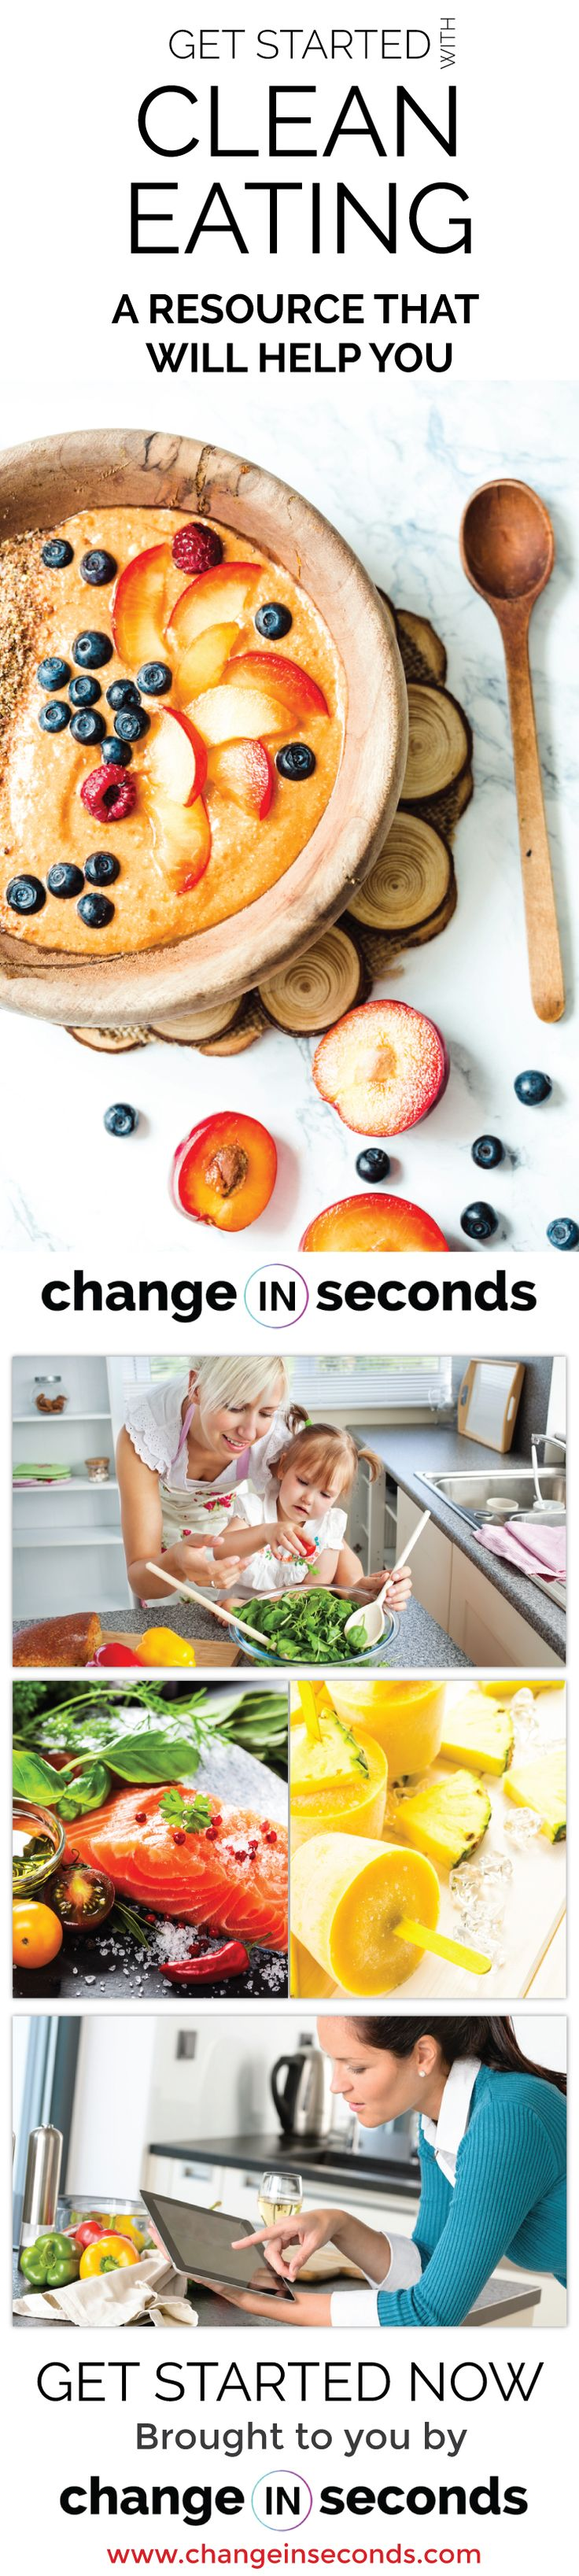 Clean Eating For Beginners Resource http://www.changeinseconds.com/clean-eating-for-beginners-resource/ #cleaneating